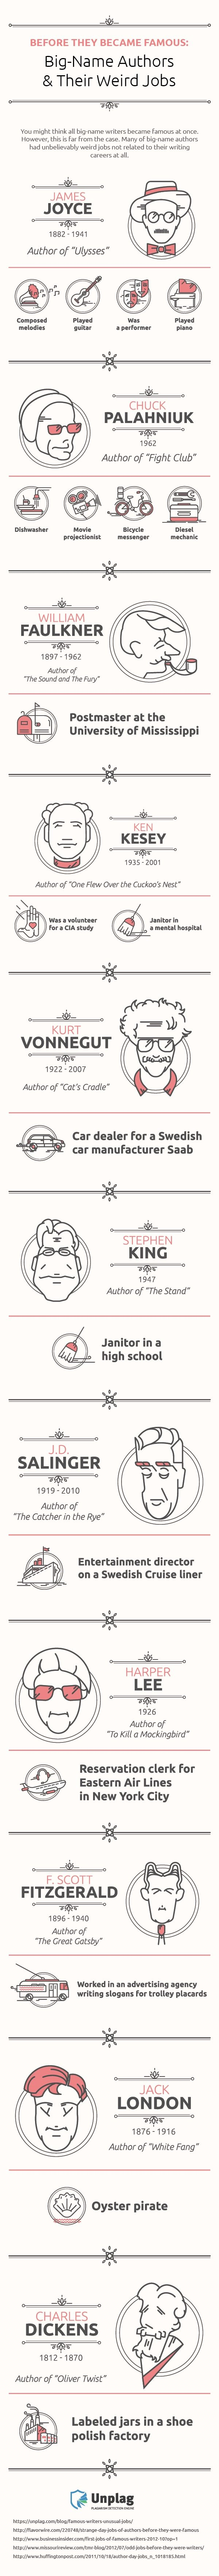 Weird-jobs-of-famous-writers-infographic